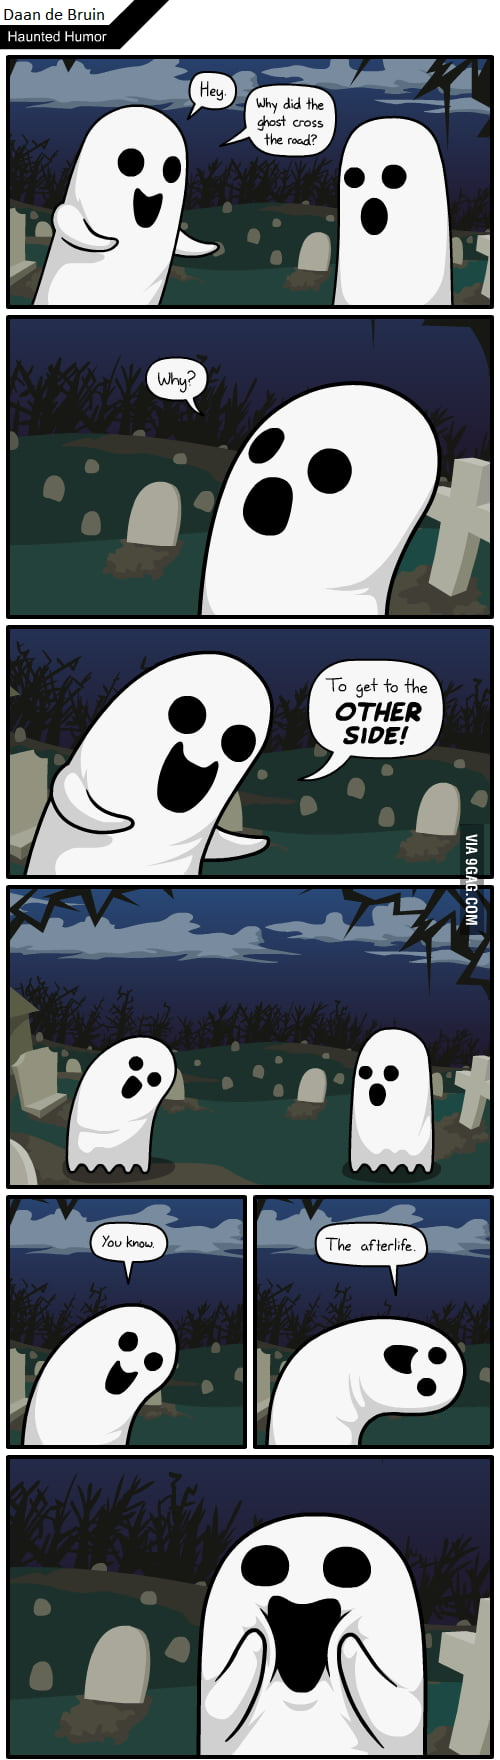 Haunted humor.